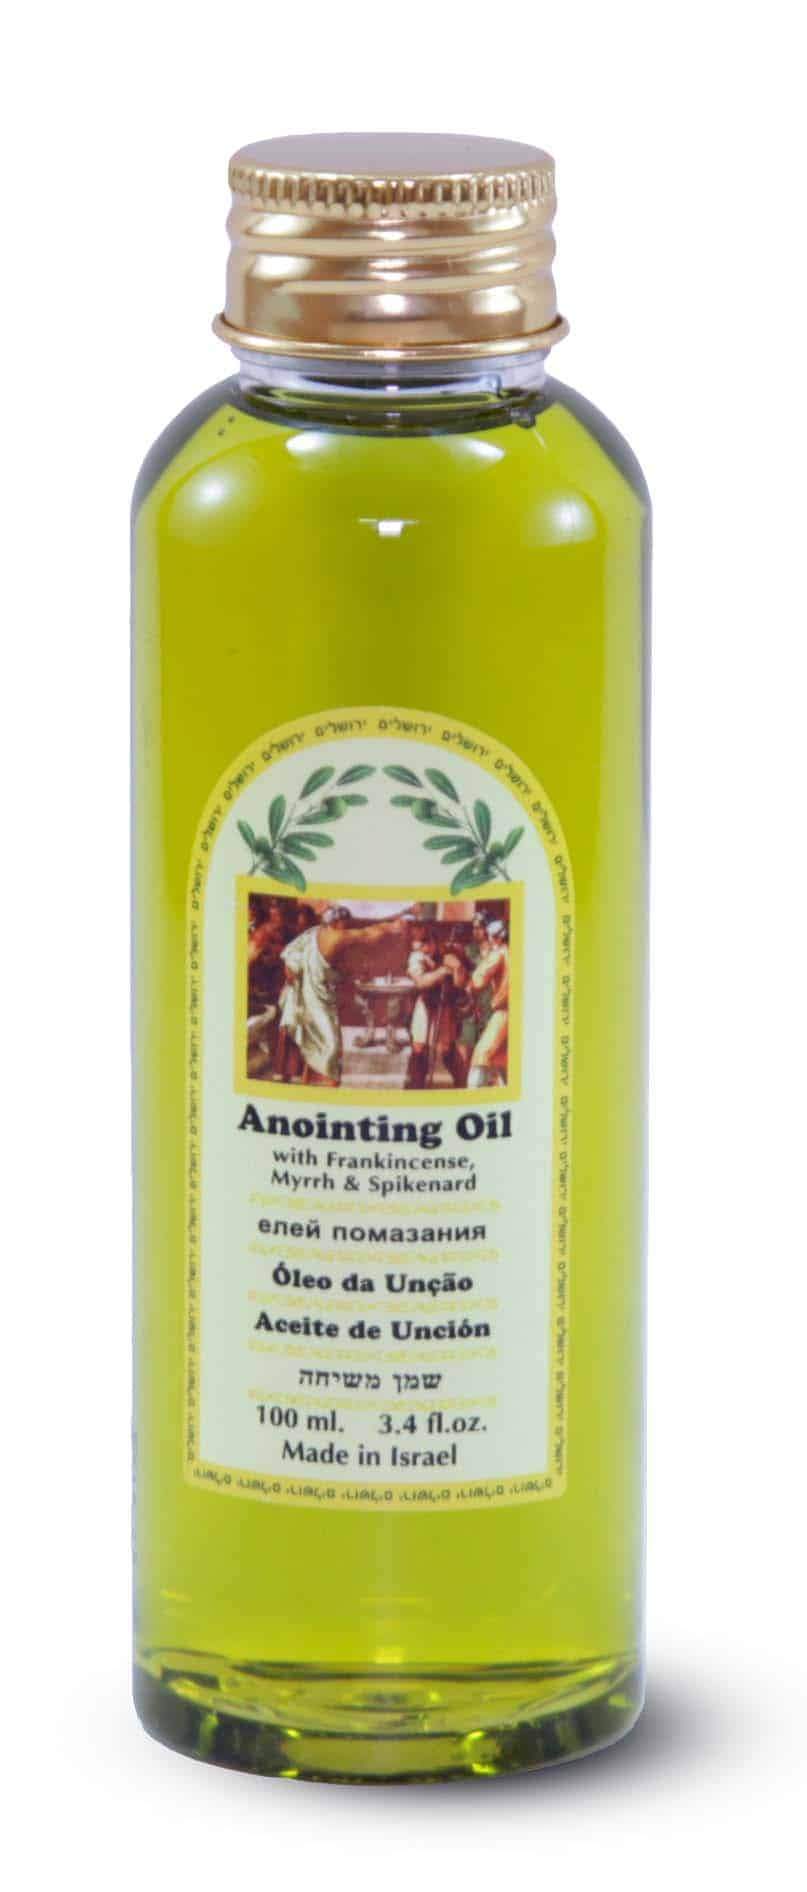 Anointing Oil Frankincense Myrrh and Spikenard 100 ml